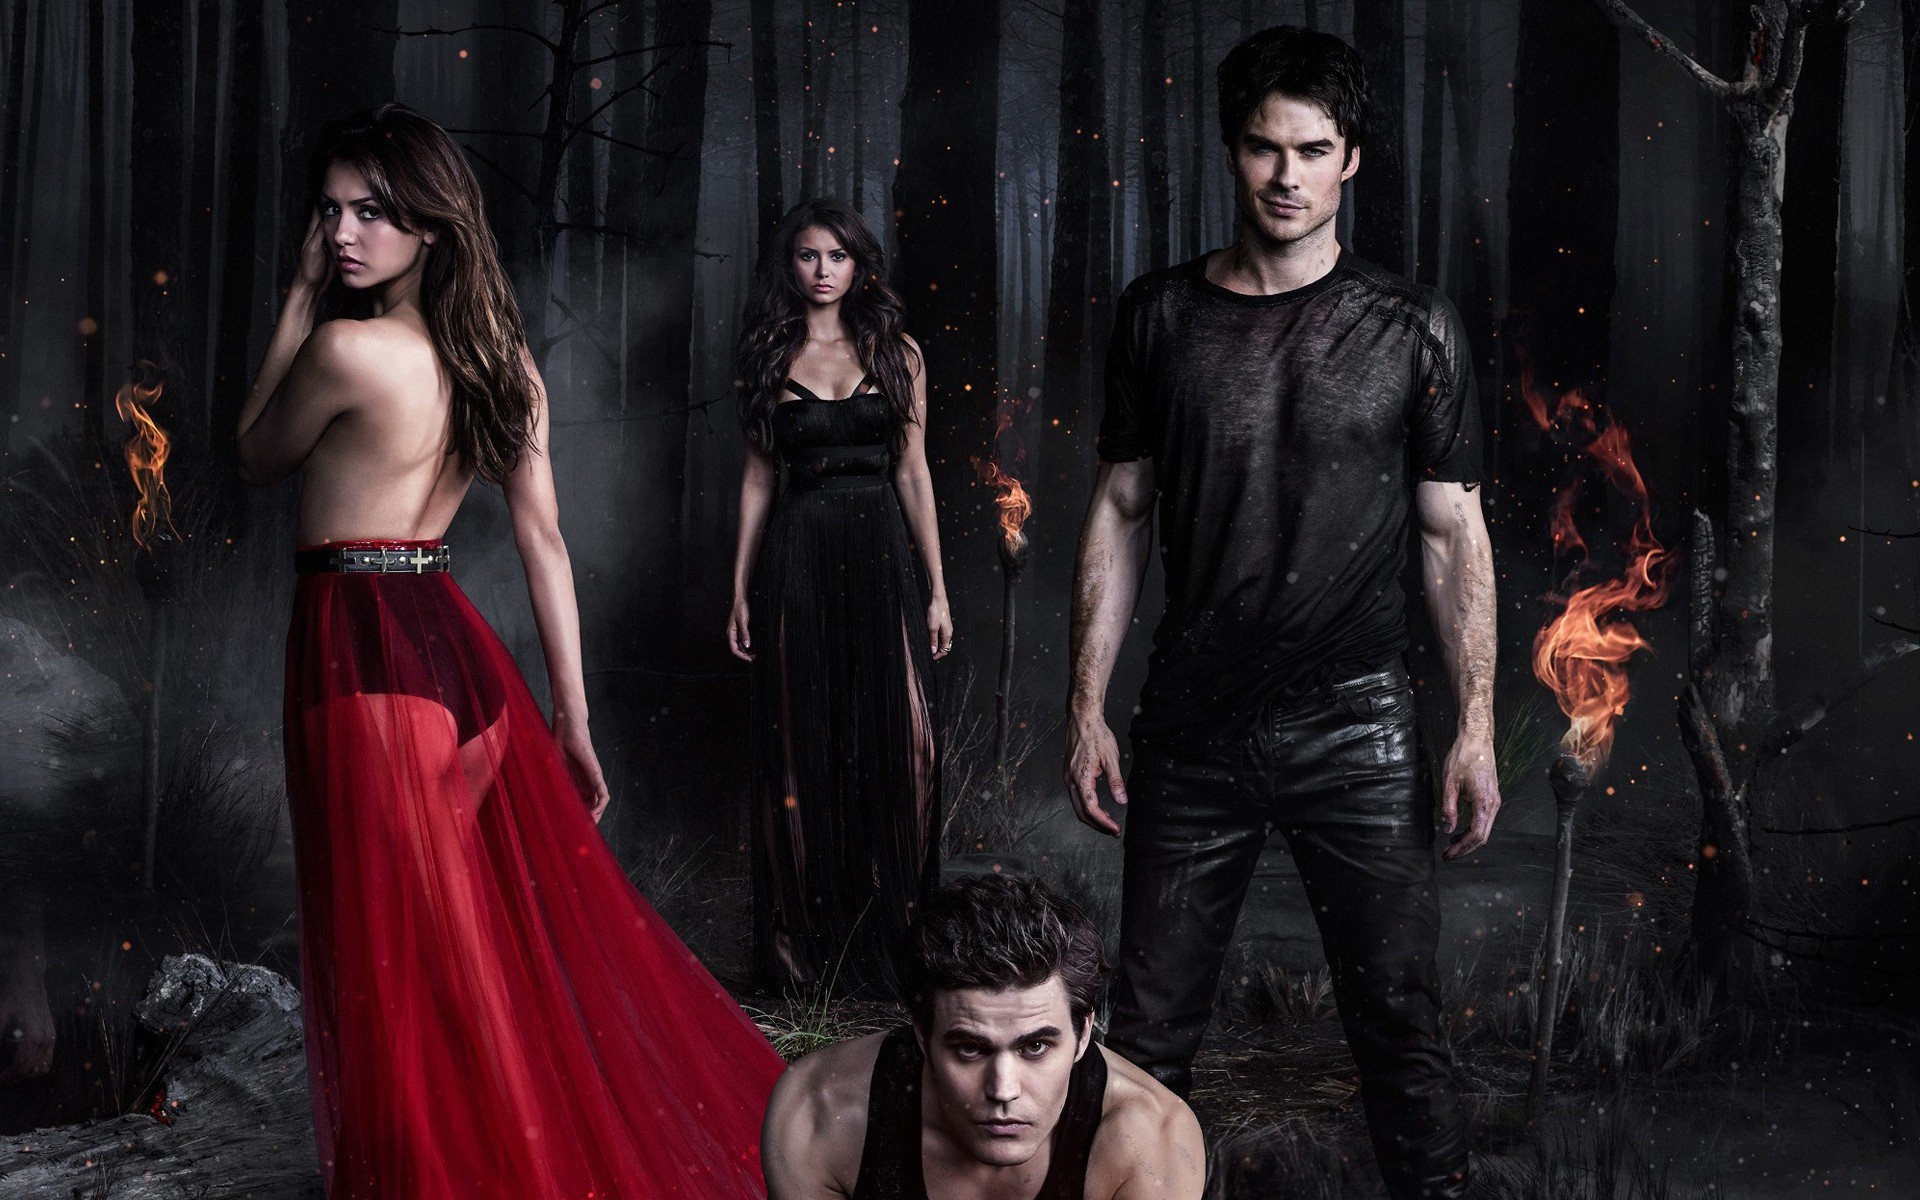 The Vampire Diaries 540x960 Resolution Wallpapers